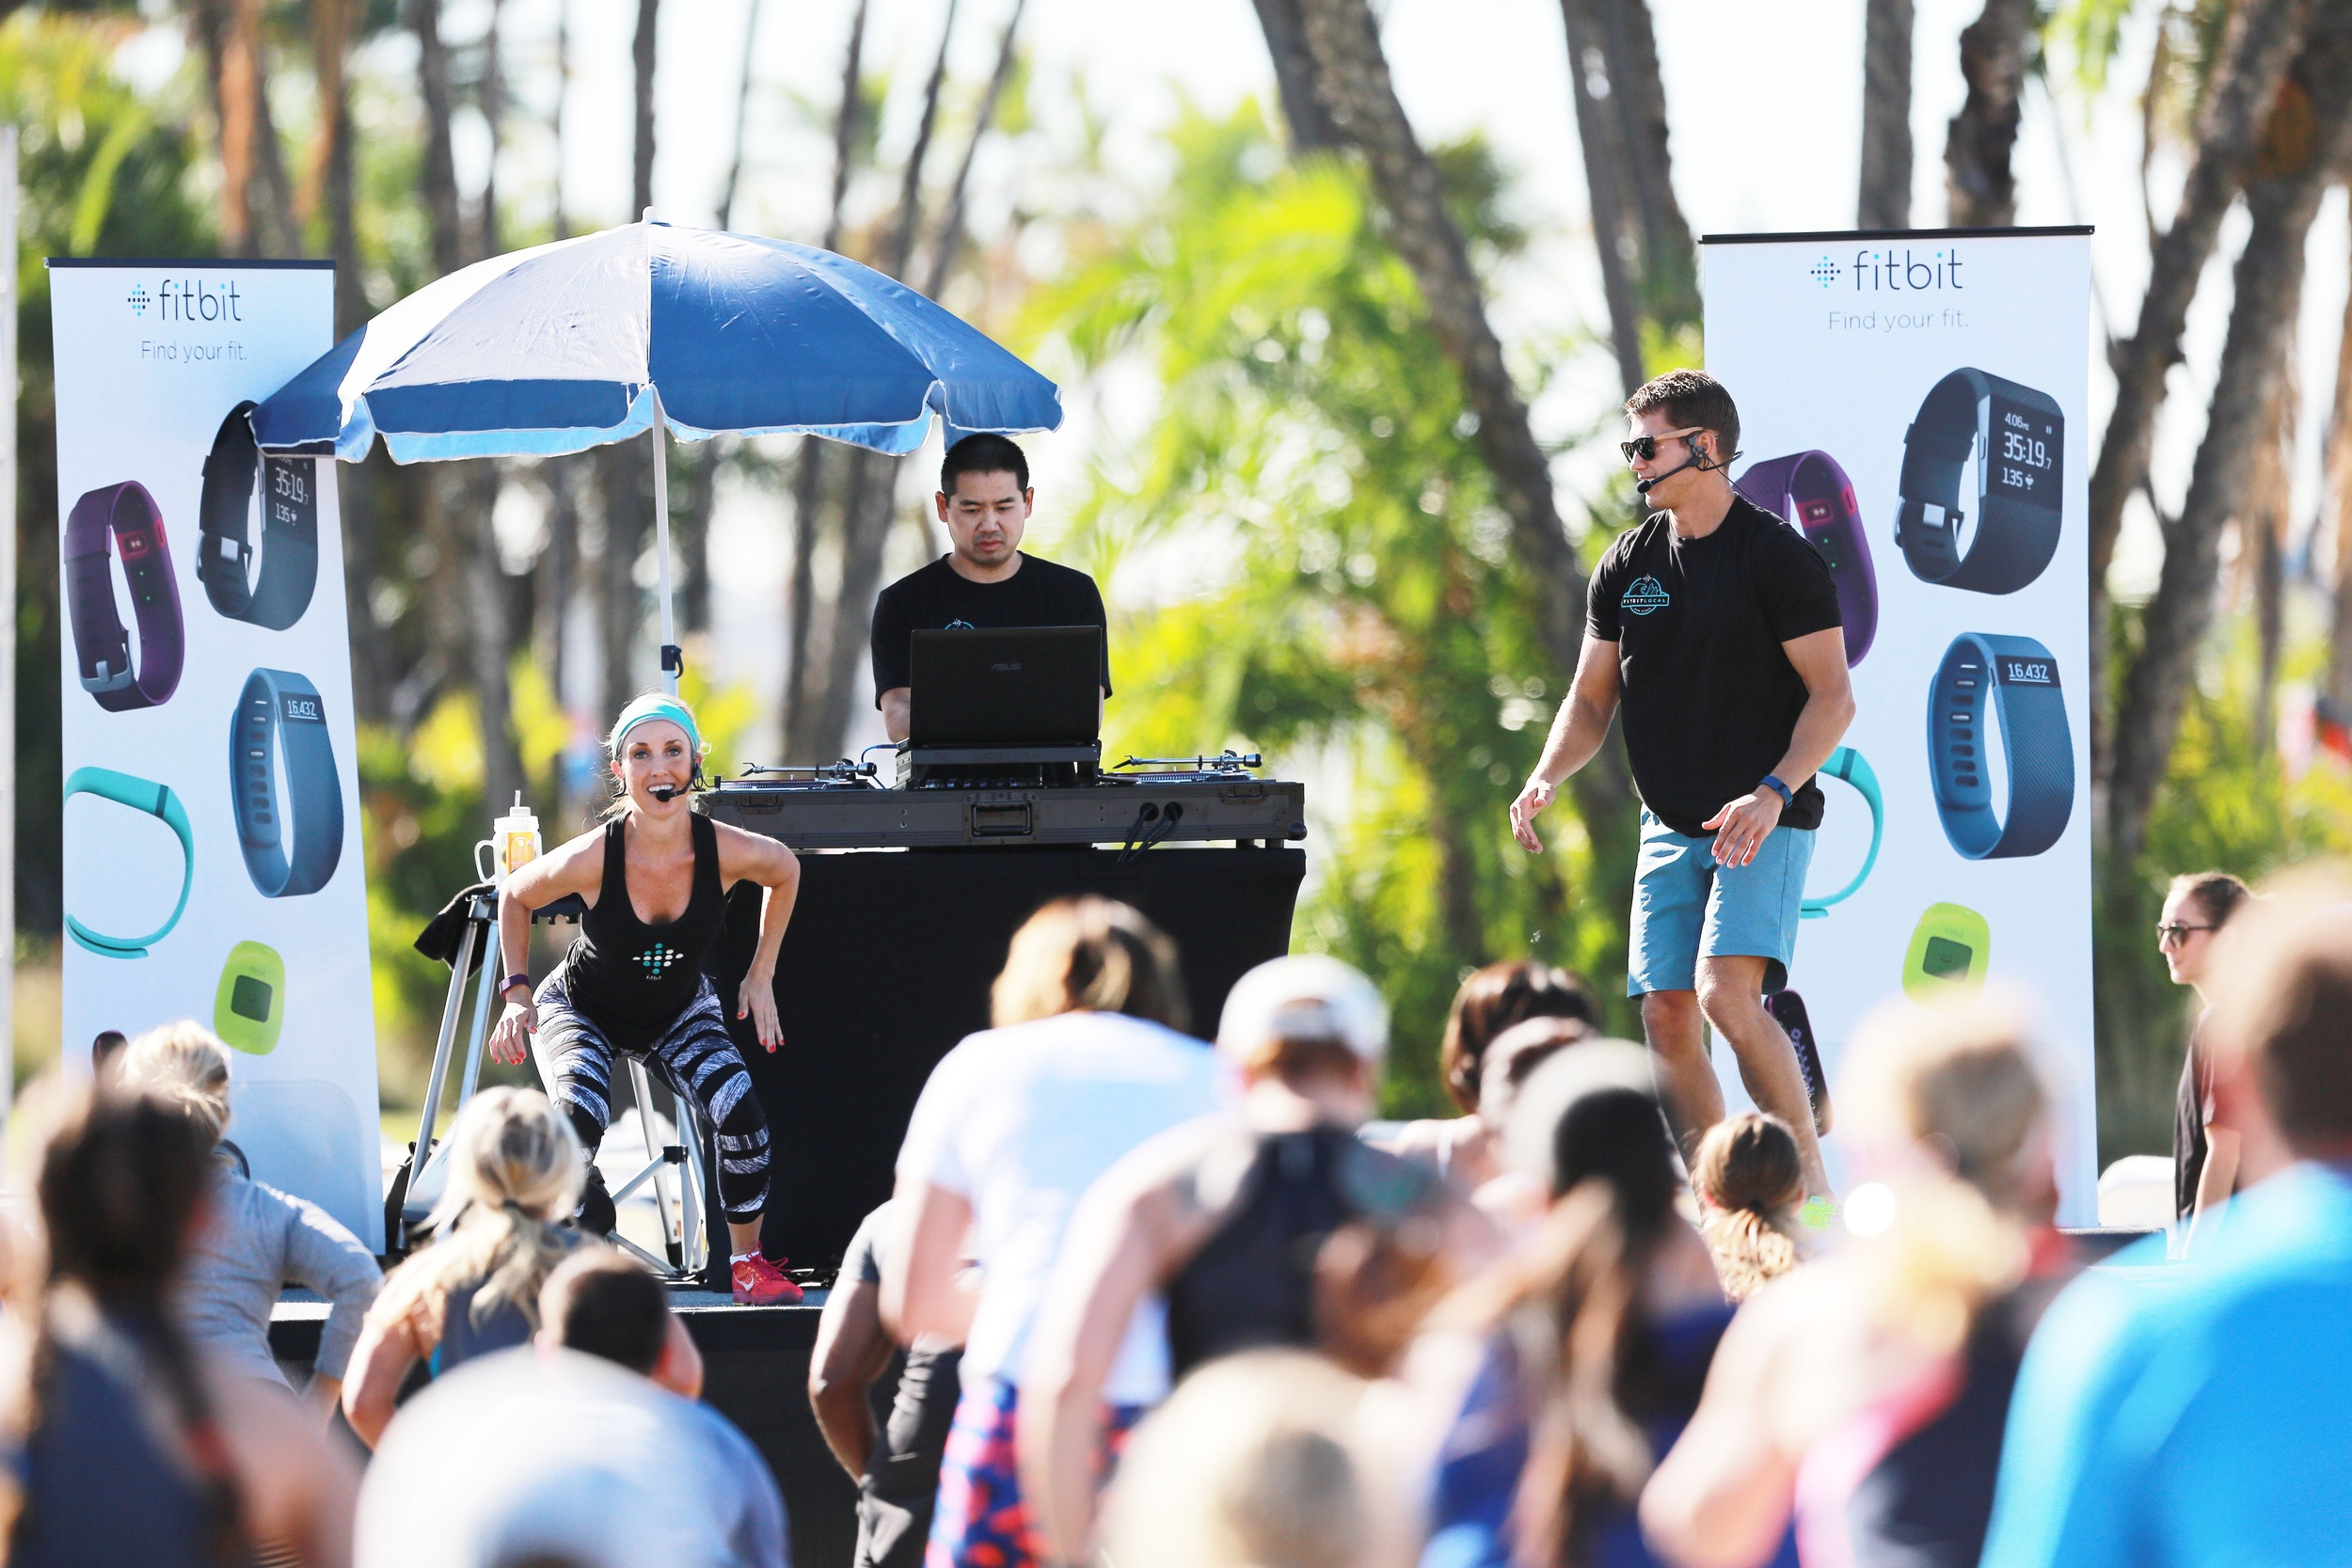 San Diego wedding and special event DJ, Justin Kanoya, provides live DJ service for a bootcamp workout put together by Fitbit.